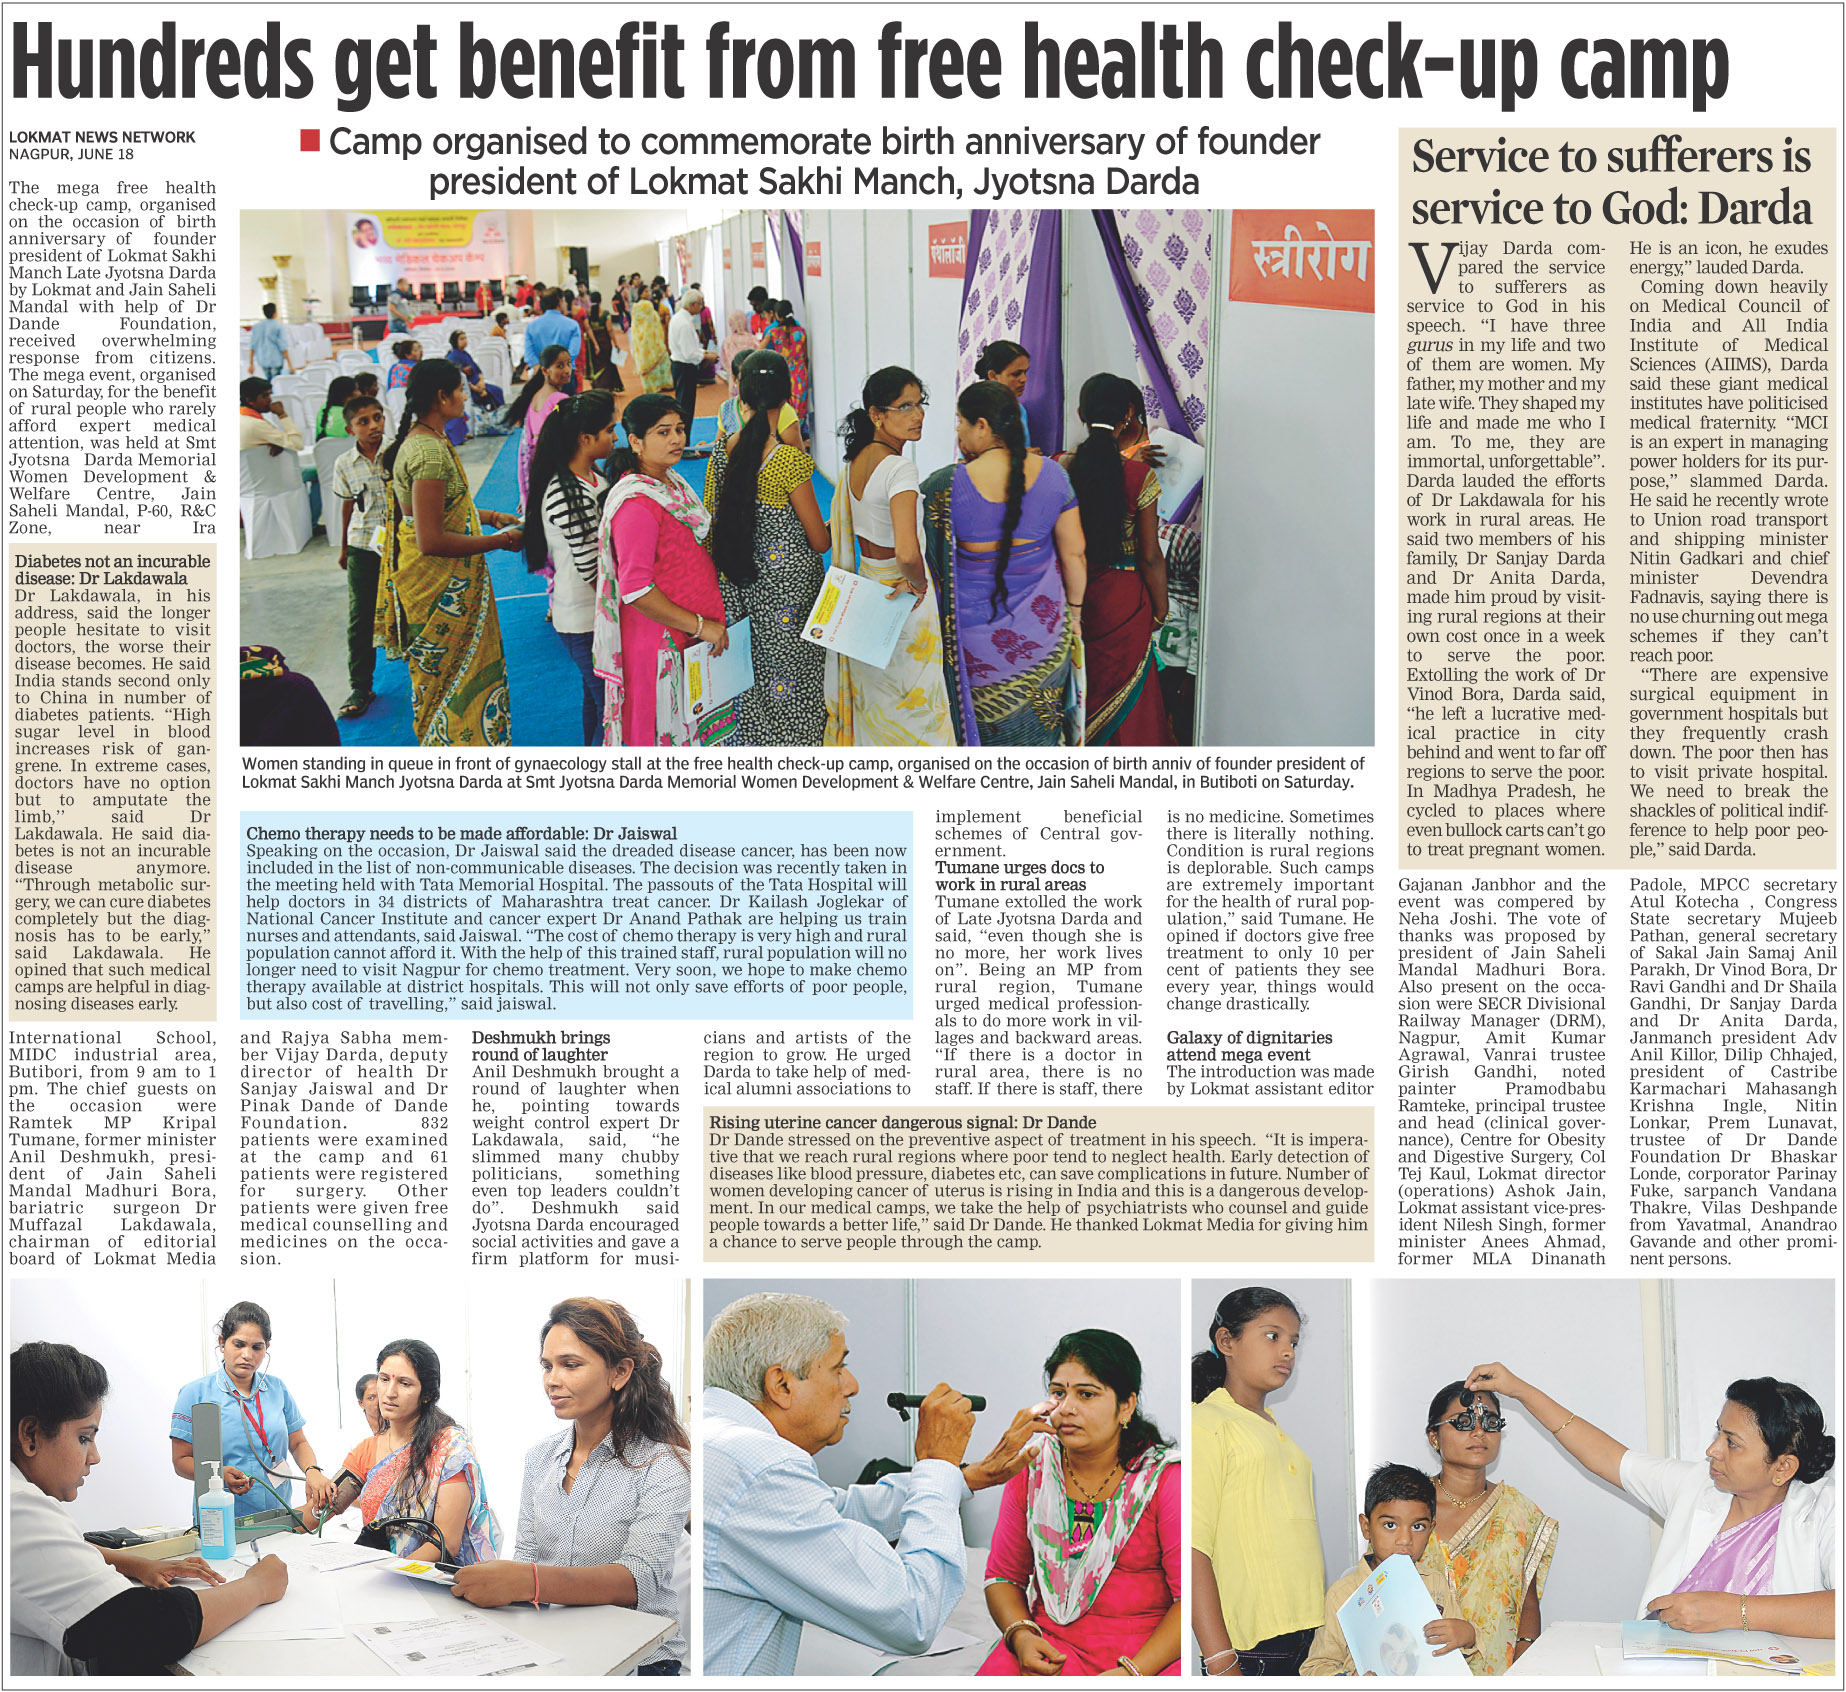 Hundreds get benefit from free health check-up camp